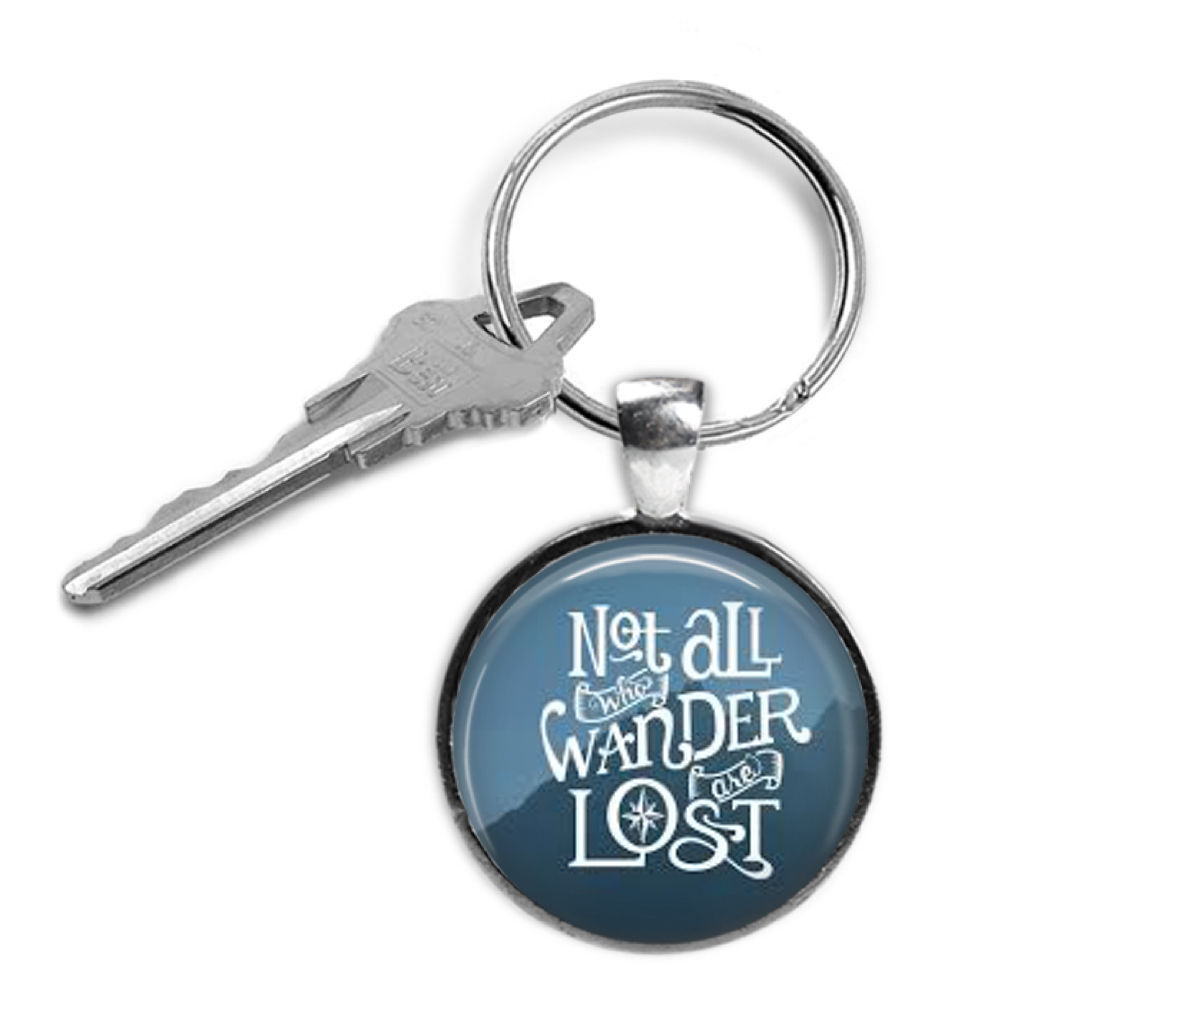 Primary image for Quote keyring -Not all that Wander - Graduation gift - Christmas gifts for him